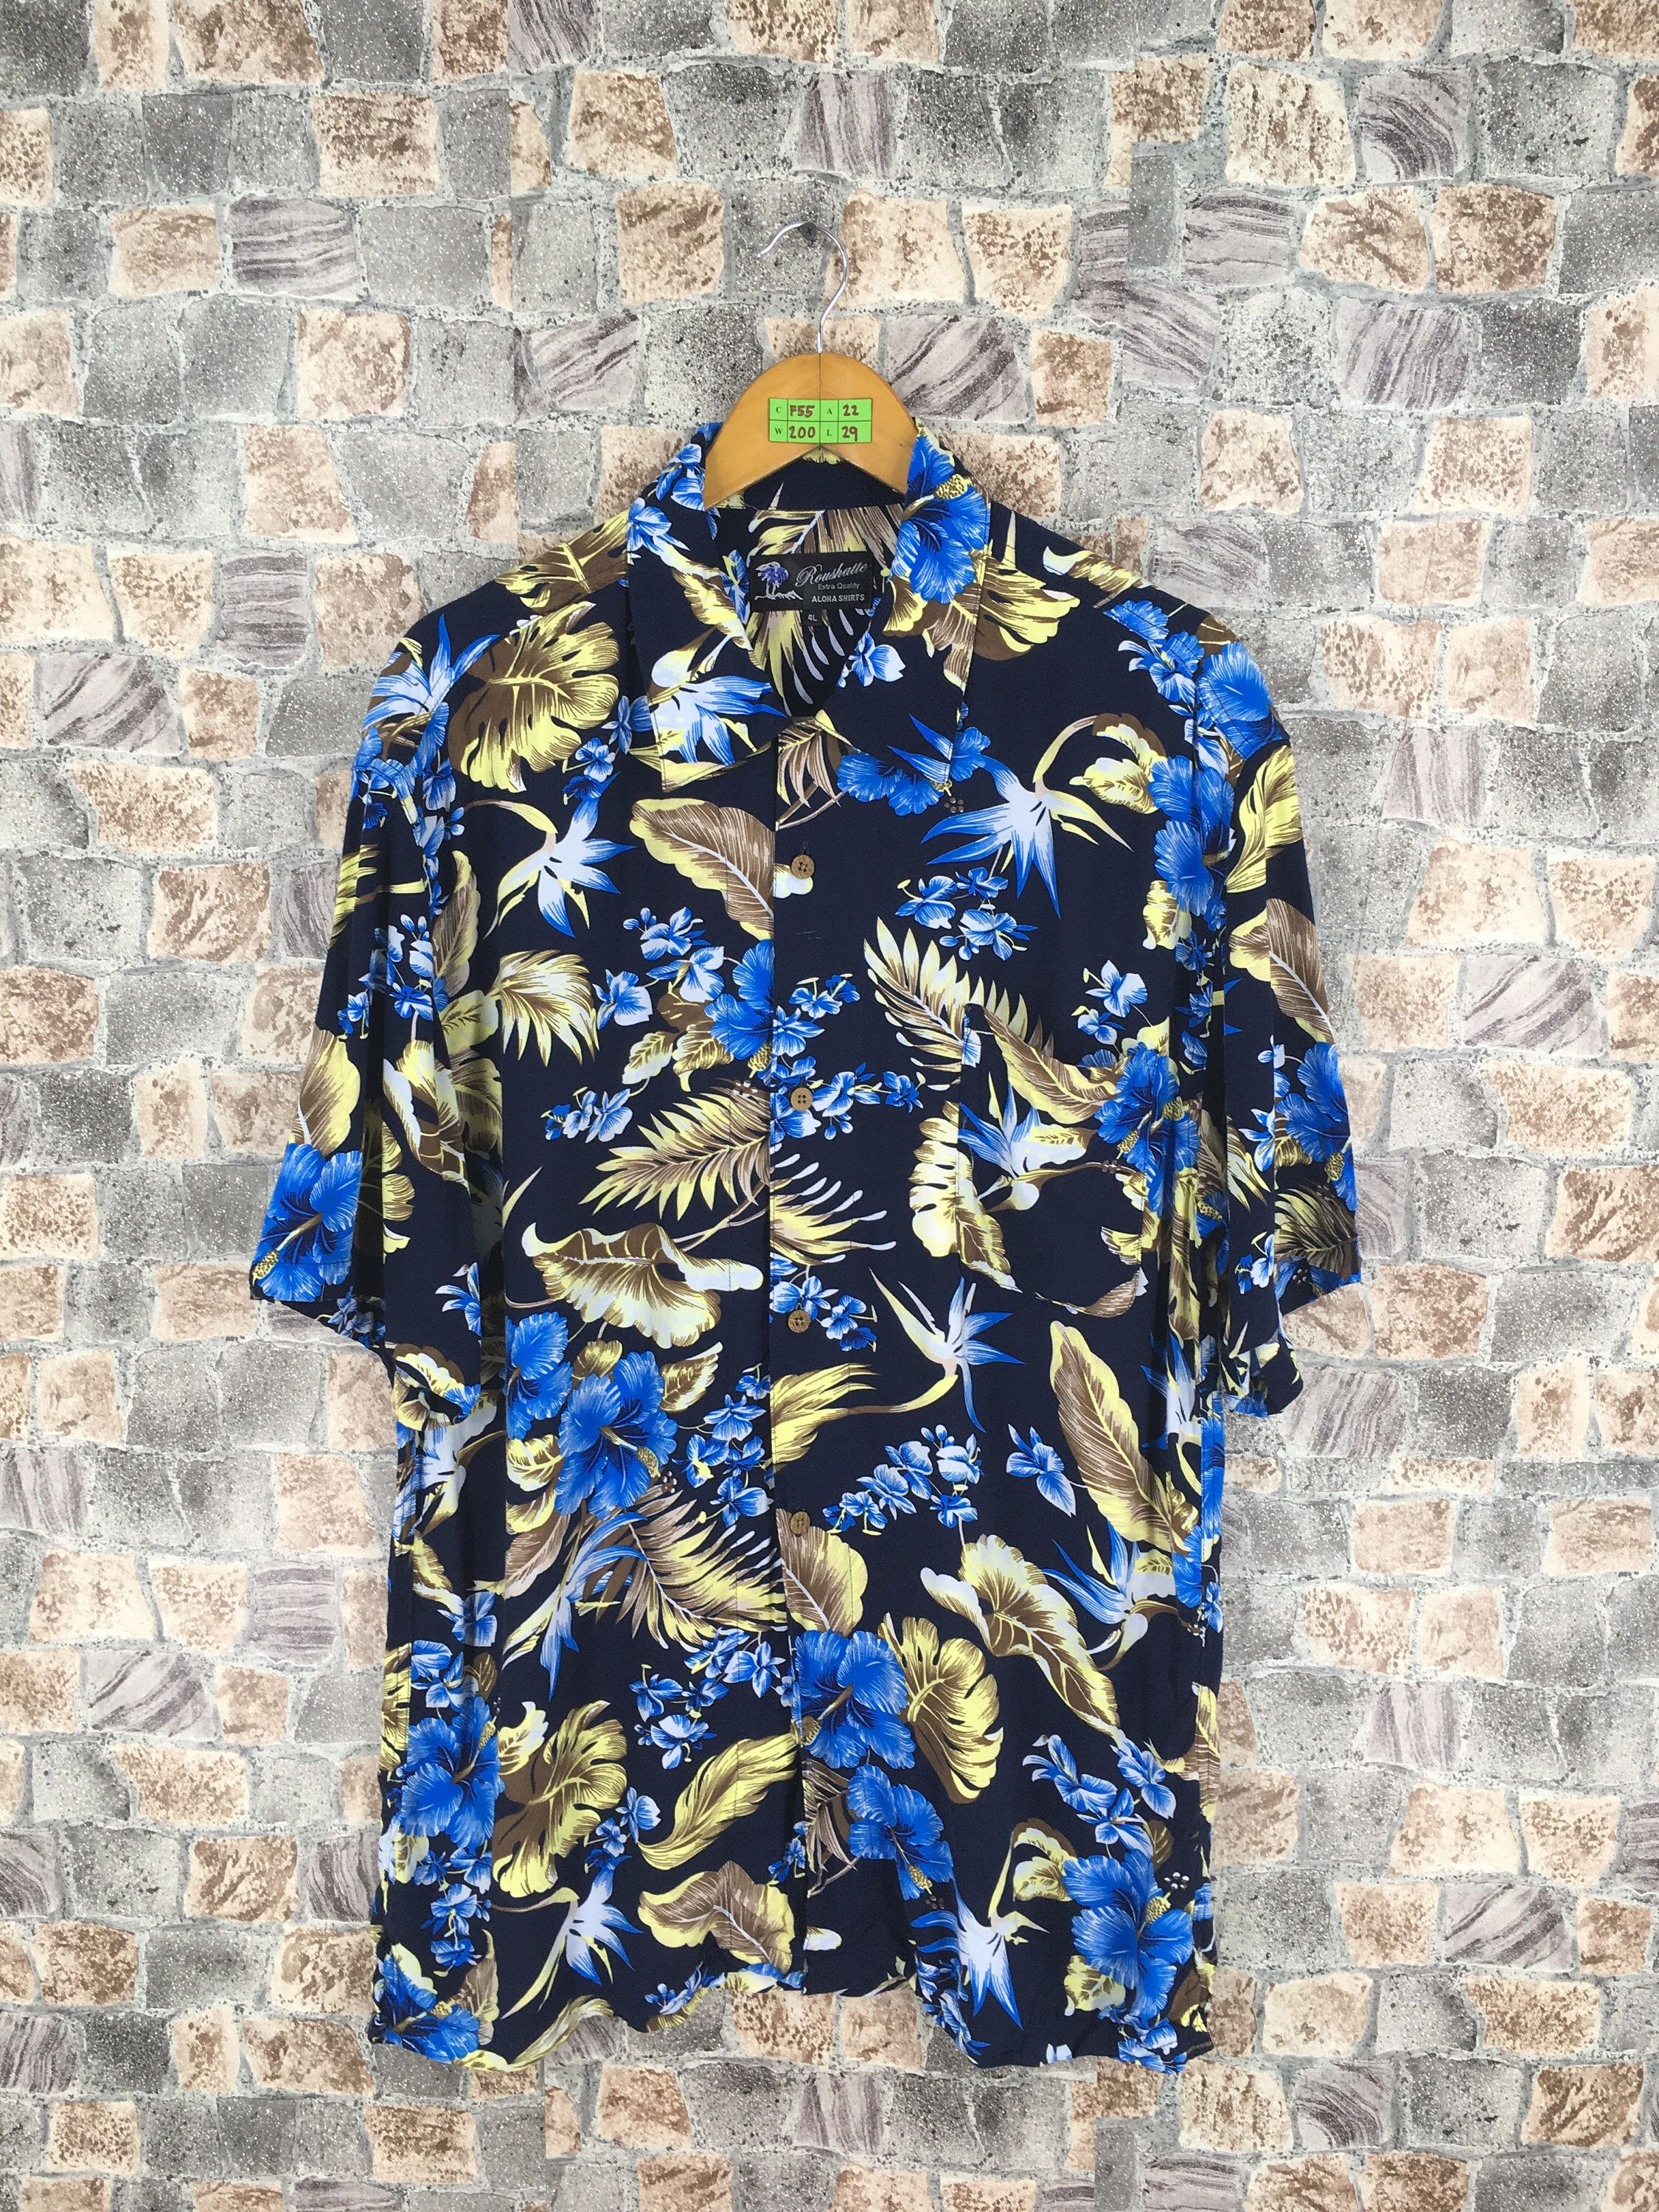 Excited to share the latest addition to my #etsy shop: Vintage Hawaiian Rayon Shirt Large Vtg 80s Hawaii Floral Multicolor Aloha Tropical Beach Wear Buttondown Size L #surferhawaiishirt #alohatropicalshirt #rockabillyhawaii #reynspoonerhawaii #coconuttreehawaii #partybeachshirt #floralbuttonup #dukekahanamoku #honoluluhawaiian